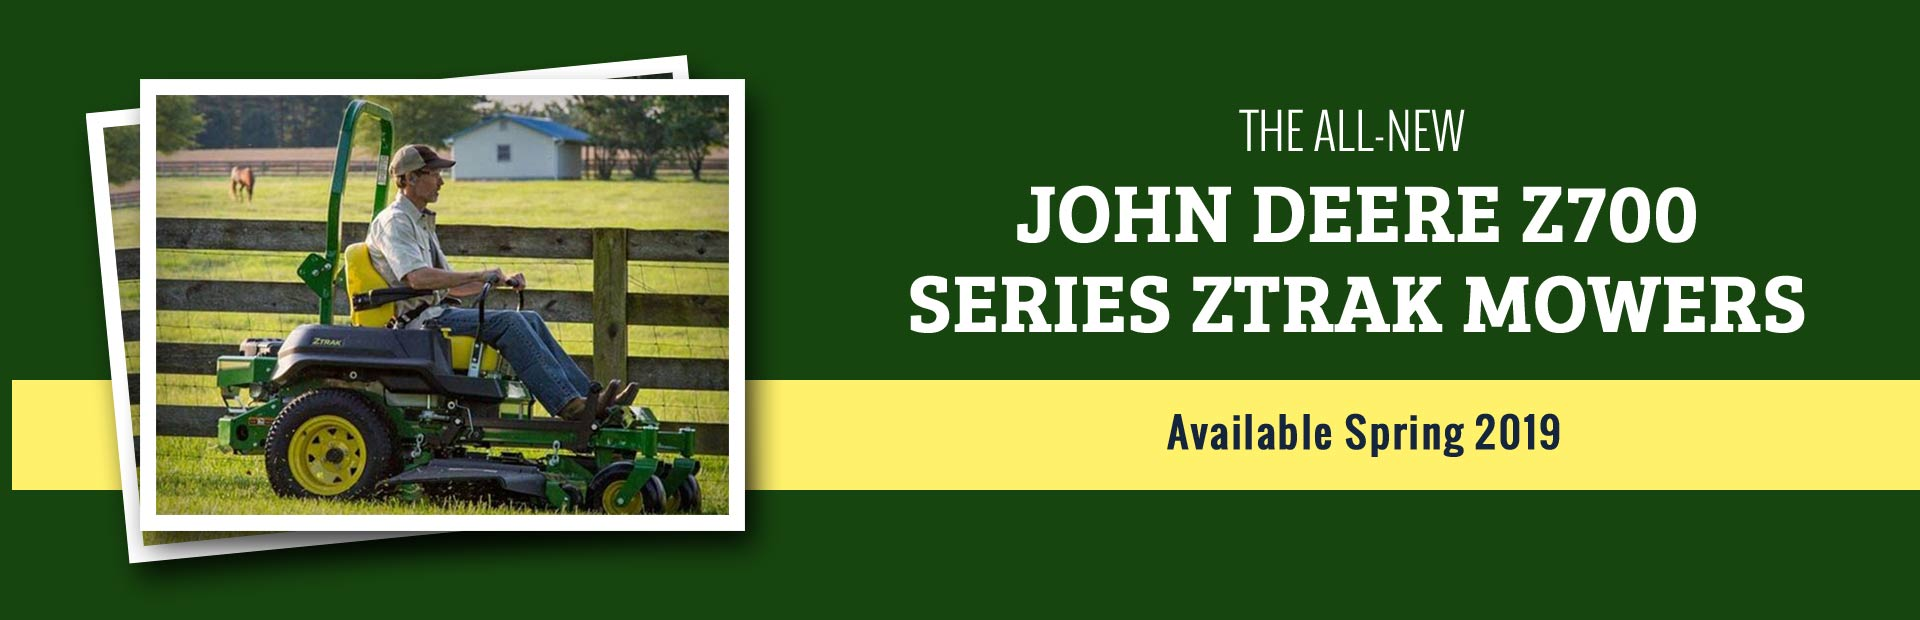 The all-new John Deere Z700 Series ZTrak mowers will be available spring 2019!